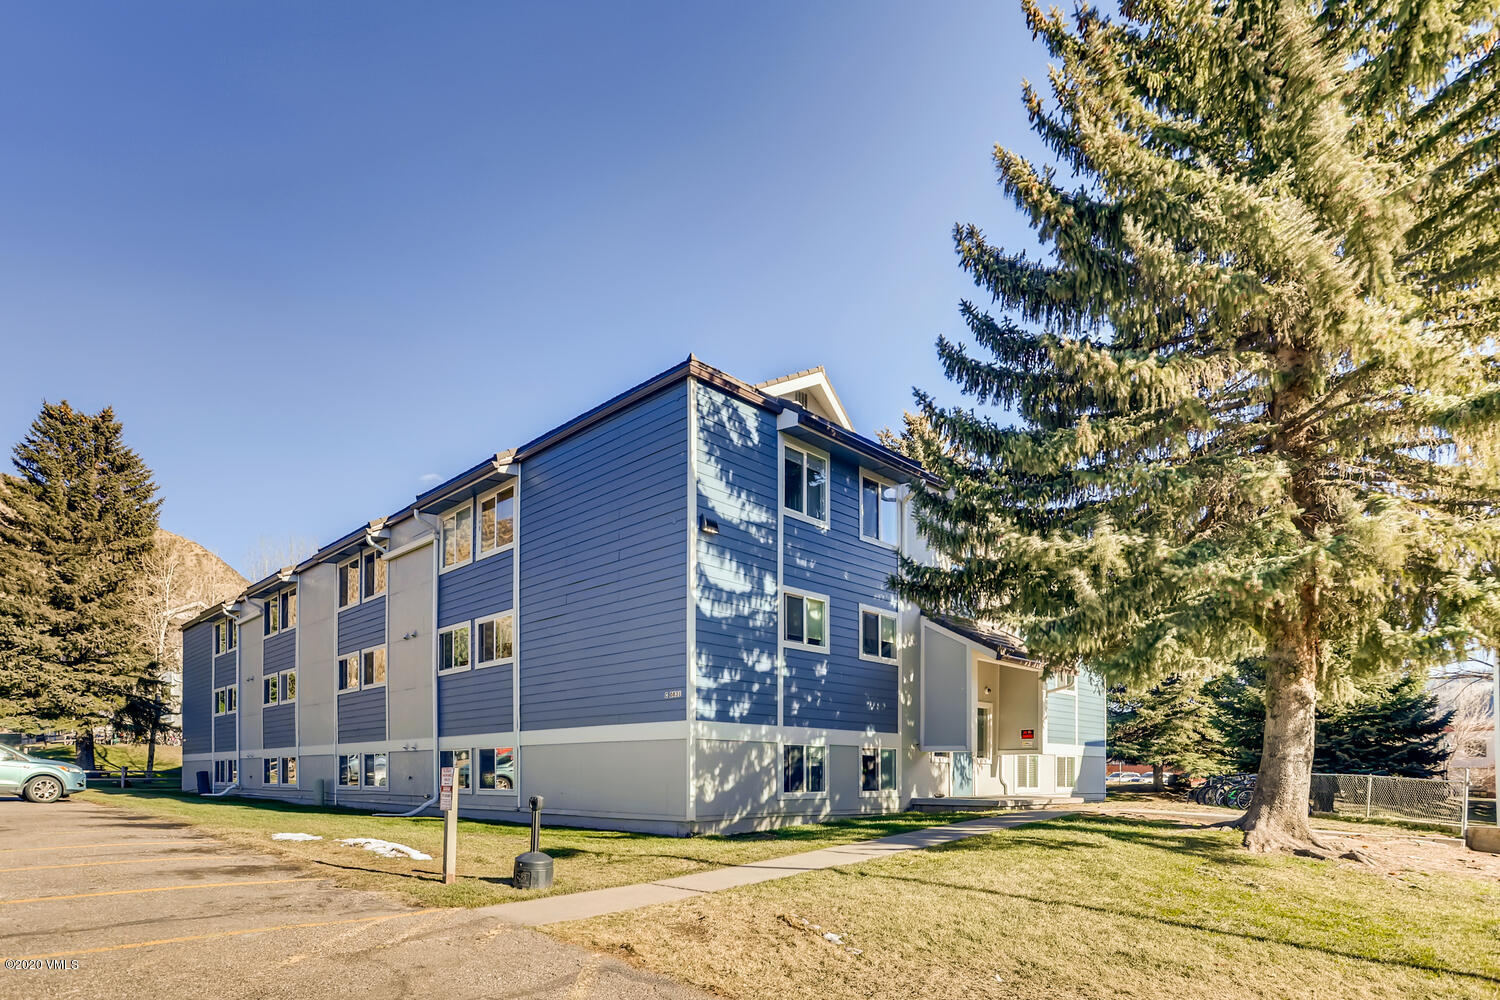 Fantastic location at the base of Beaver Creek mountain. This 2 bd/1 ba condo is ideally located just steps from Nottingham road, bike trails, shops and restaurants. Great rental history and ready for a new owner!